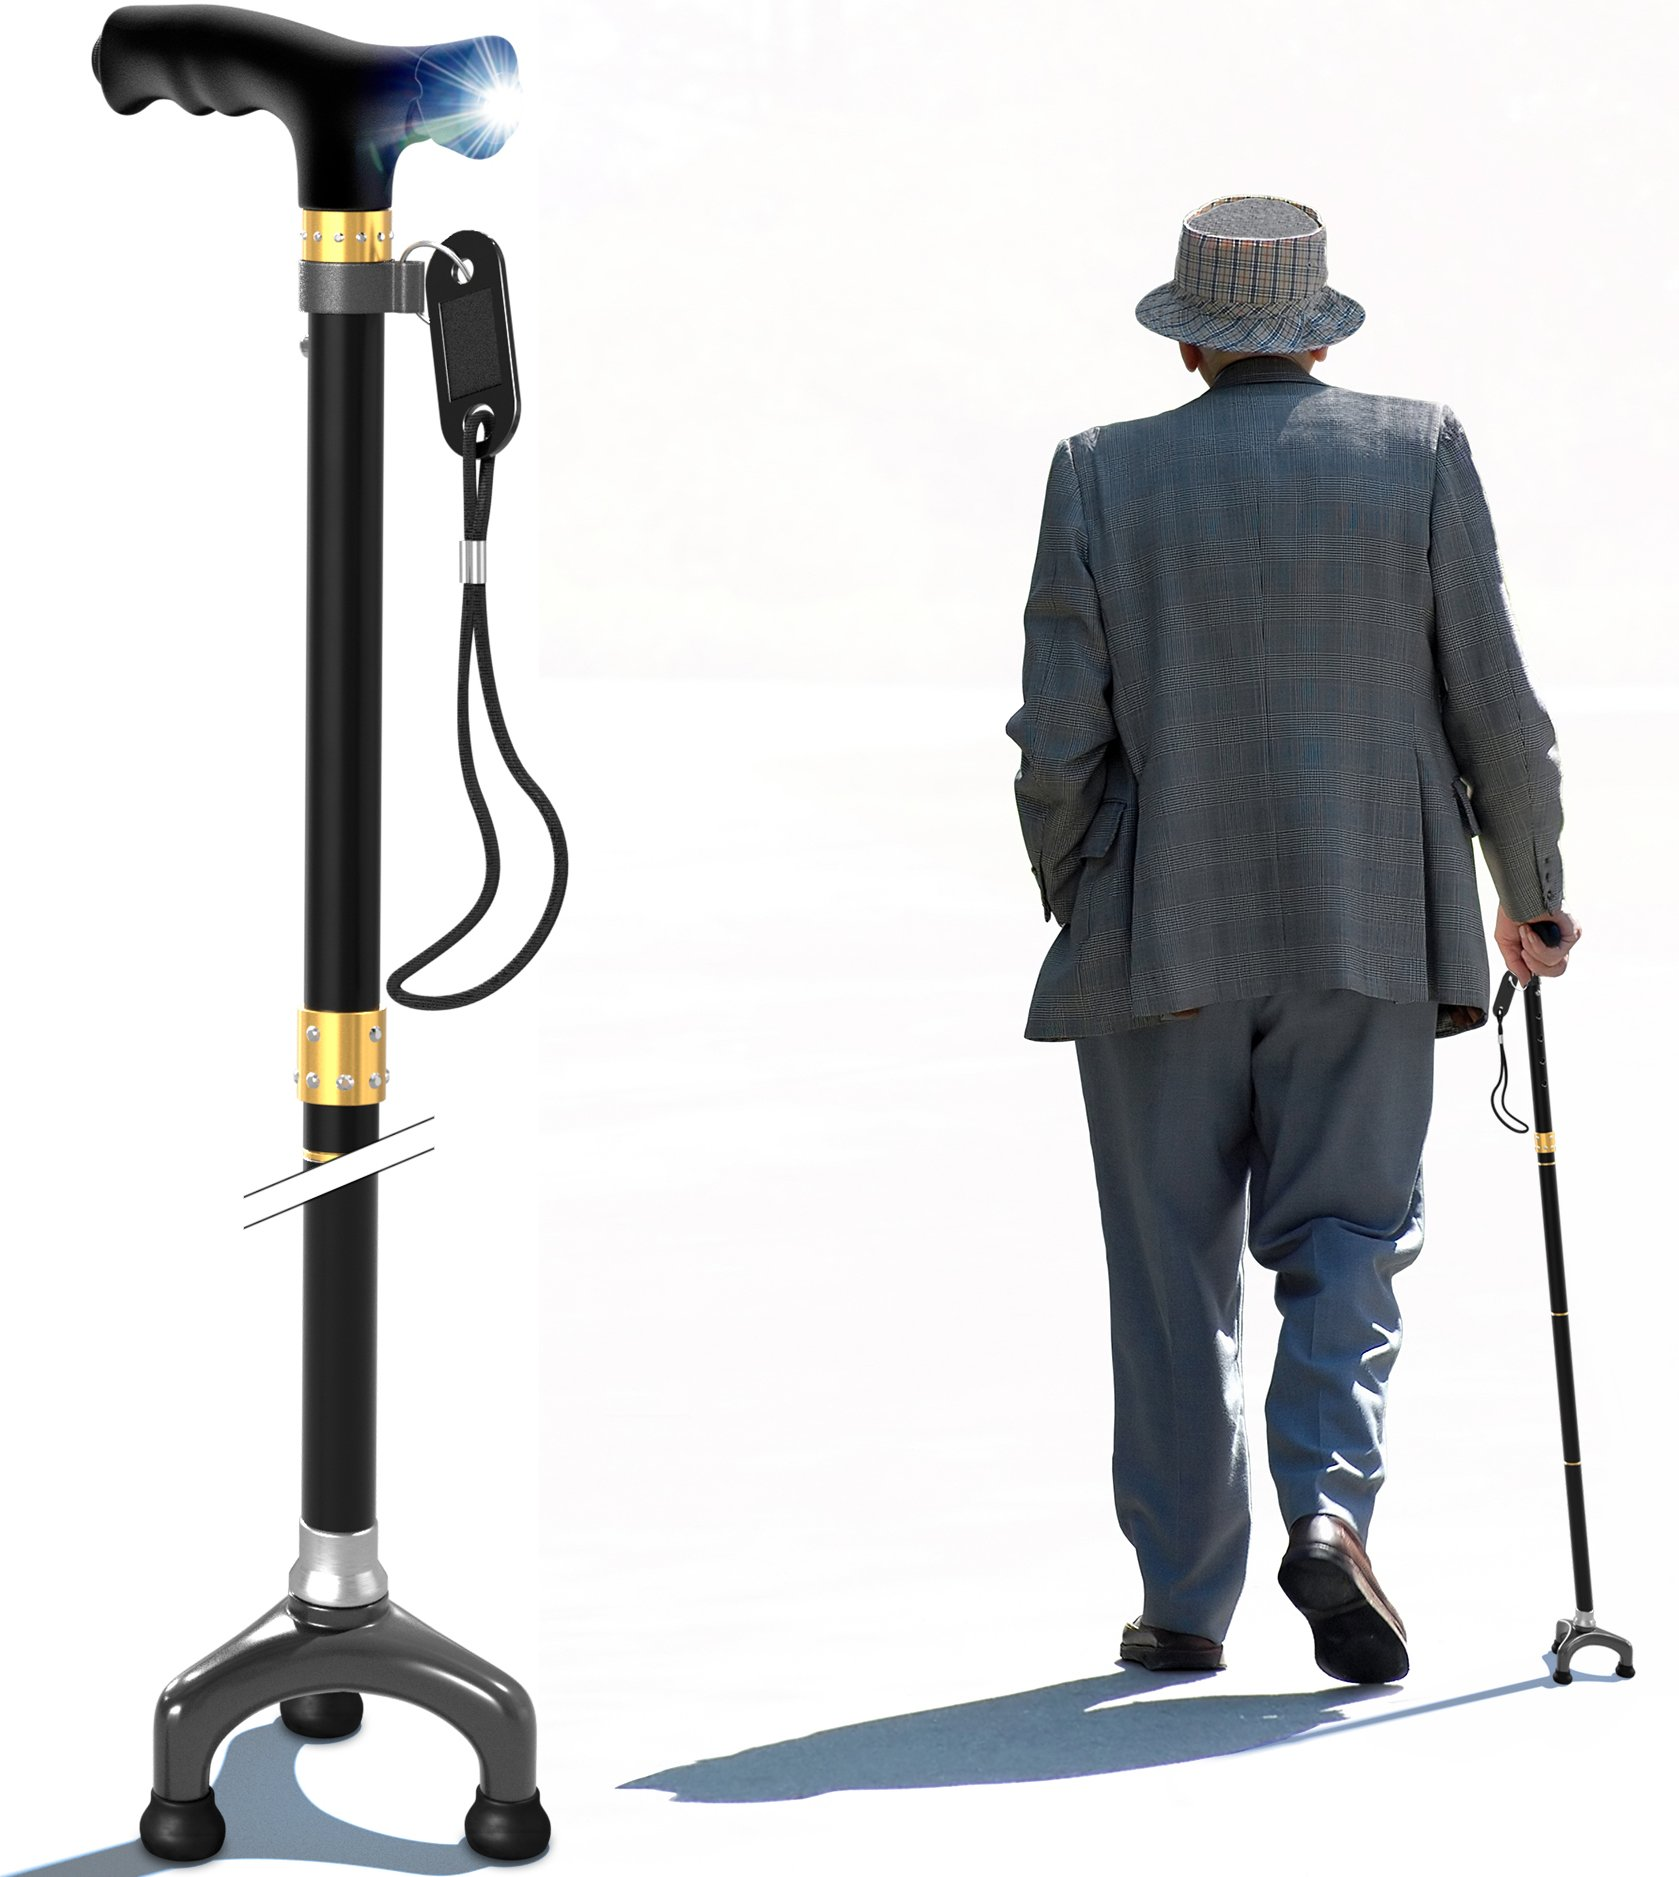 Bago Walking Cane for Men and Women - Folding Stick with Led Light and Pivot Base Tripod Tips - Travel with These Adjustable Canes and Walking Sticks - Pack Small, LightweightCollapsible (Black)